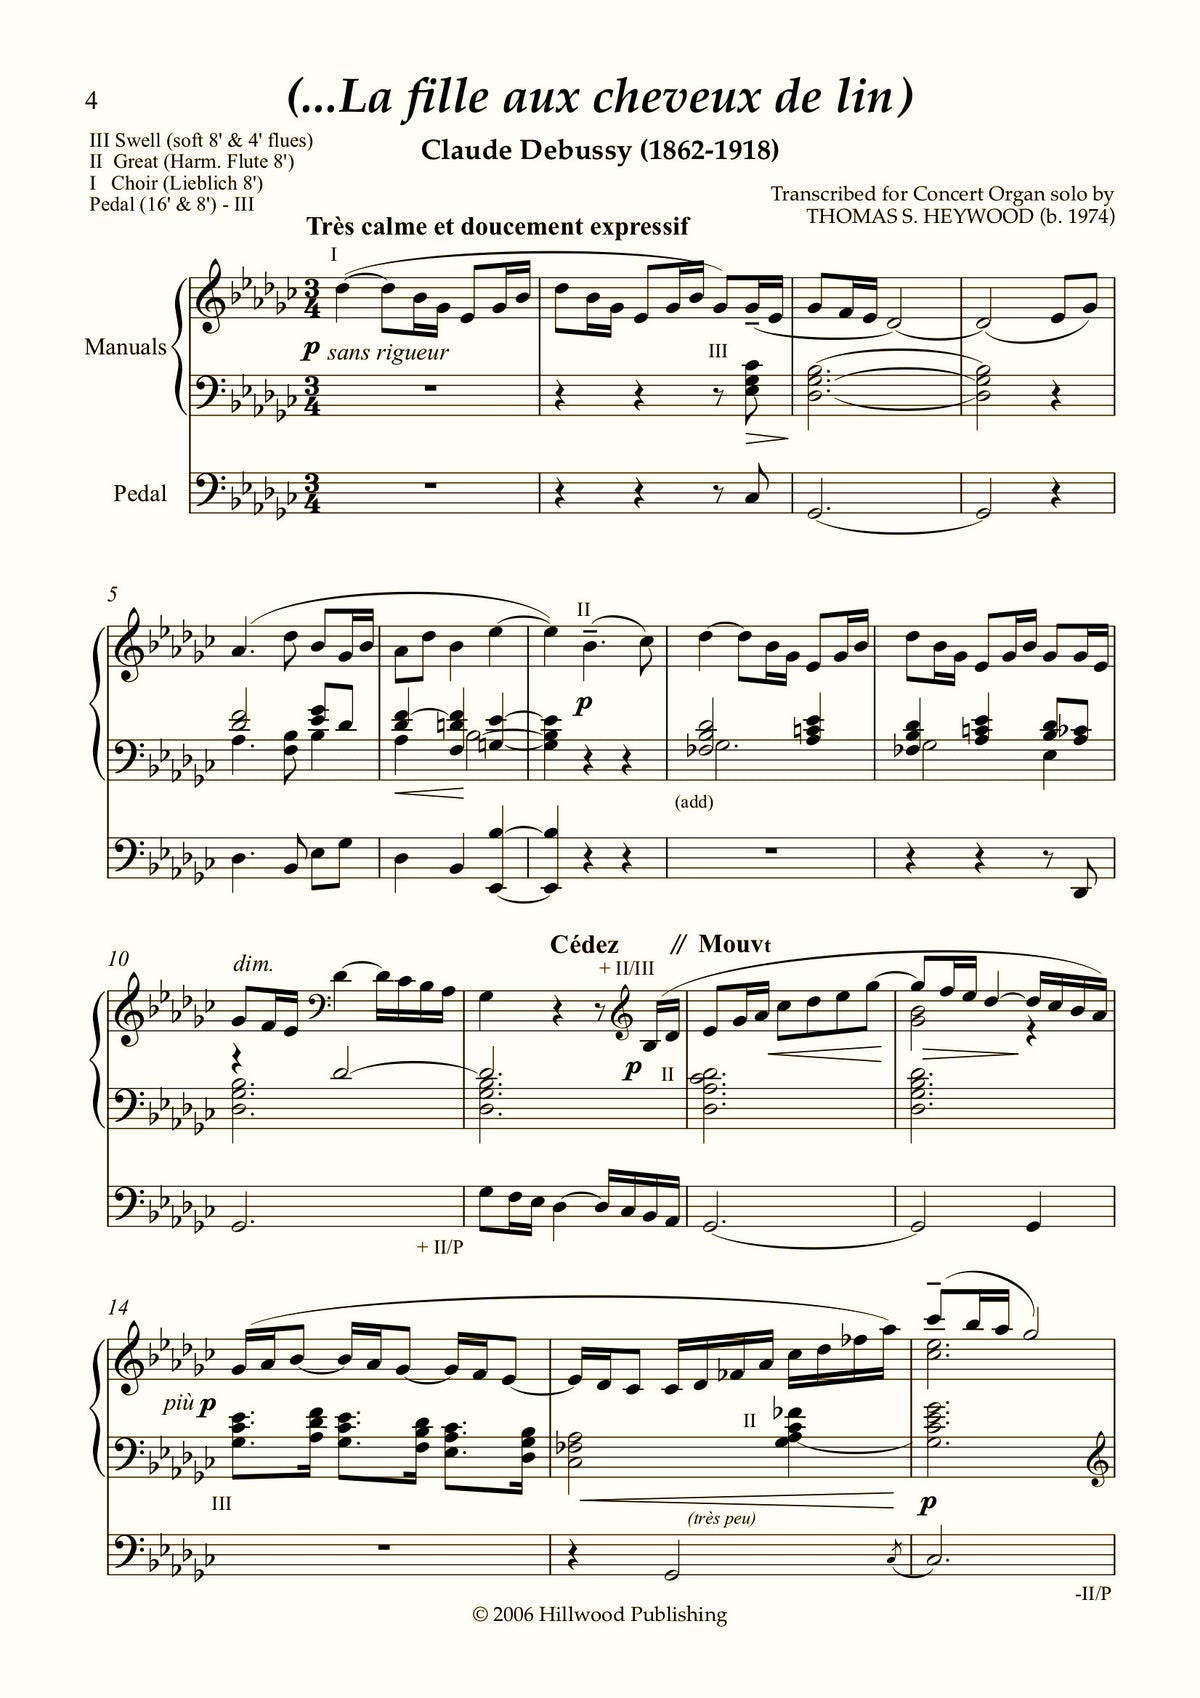 Debussy/Heywood - 'The Girl with the Flaxen Hair' from Préludes Book 1, No. 8 (Score) | Thomas Heywood | Concert Organ International